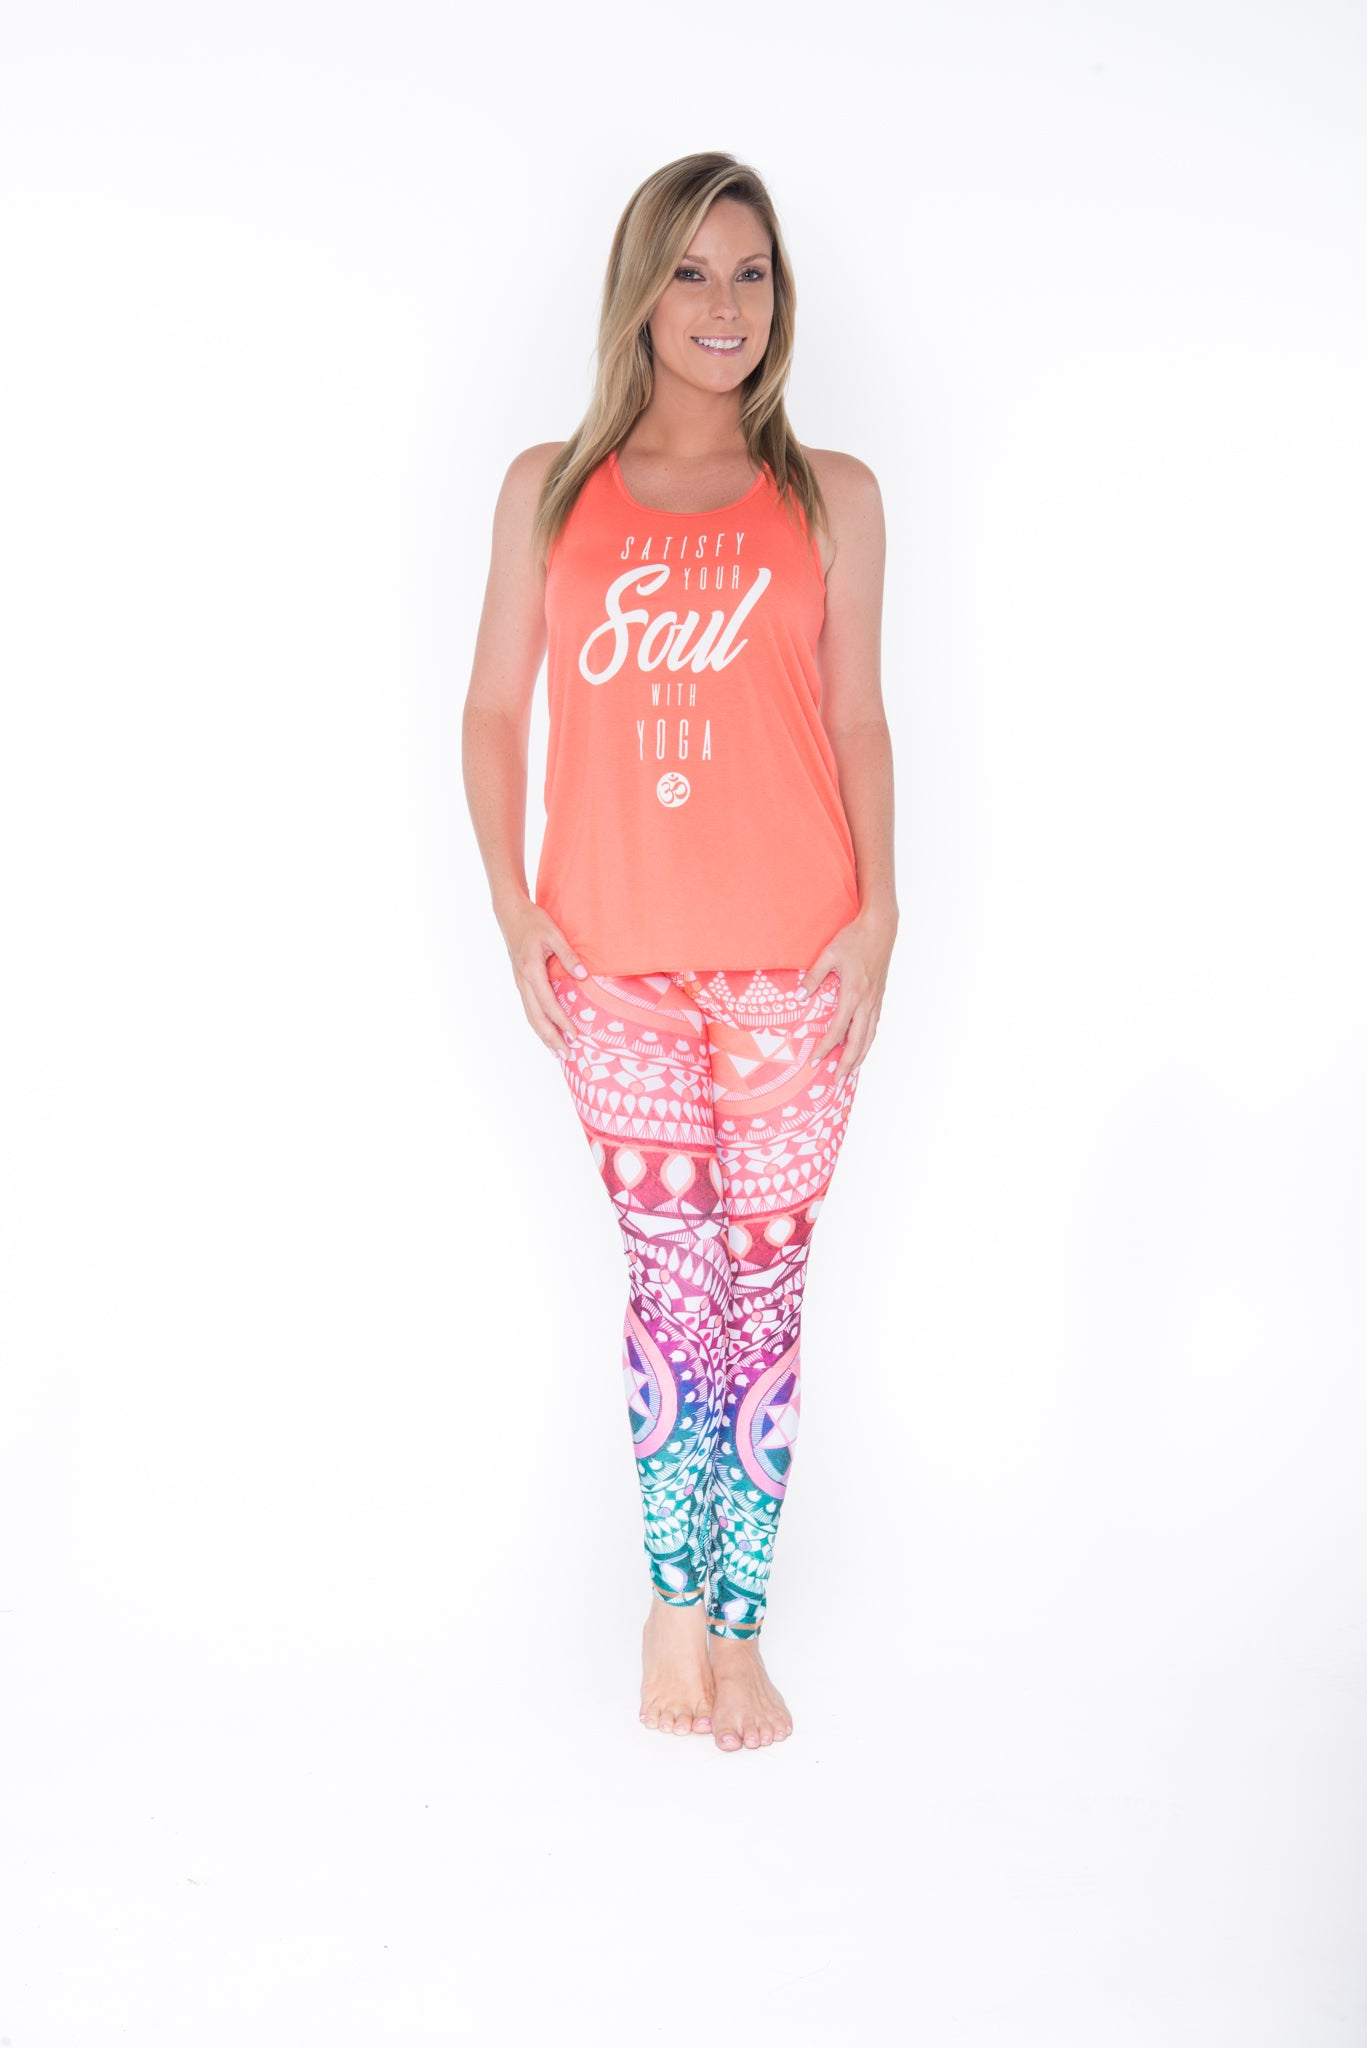 Satisfying Your Soul Sheer Racer Back Tank Top - Coral